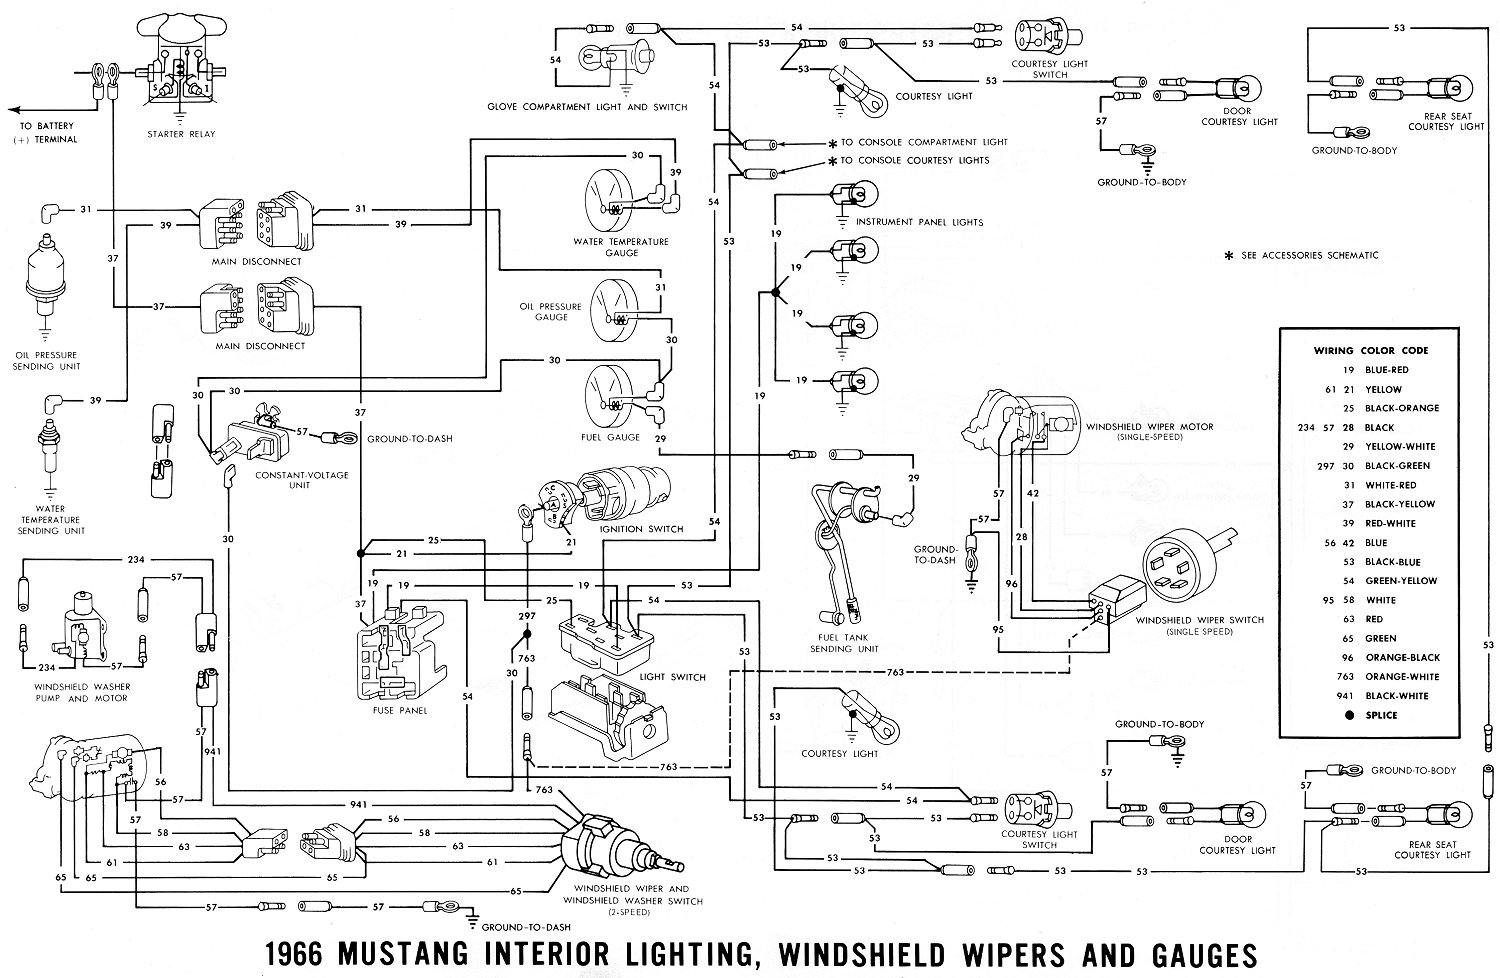 66inter1 1966 mustang wiring diagrams average joe restoration 1968 ford mustang wiring diagram at soozxer.org